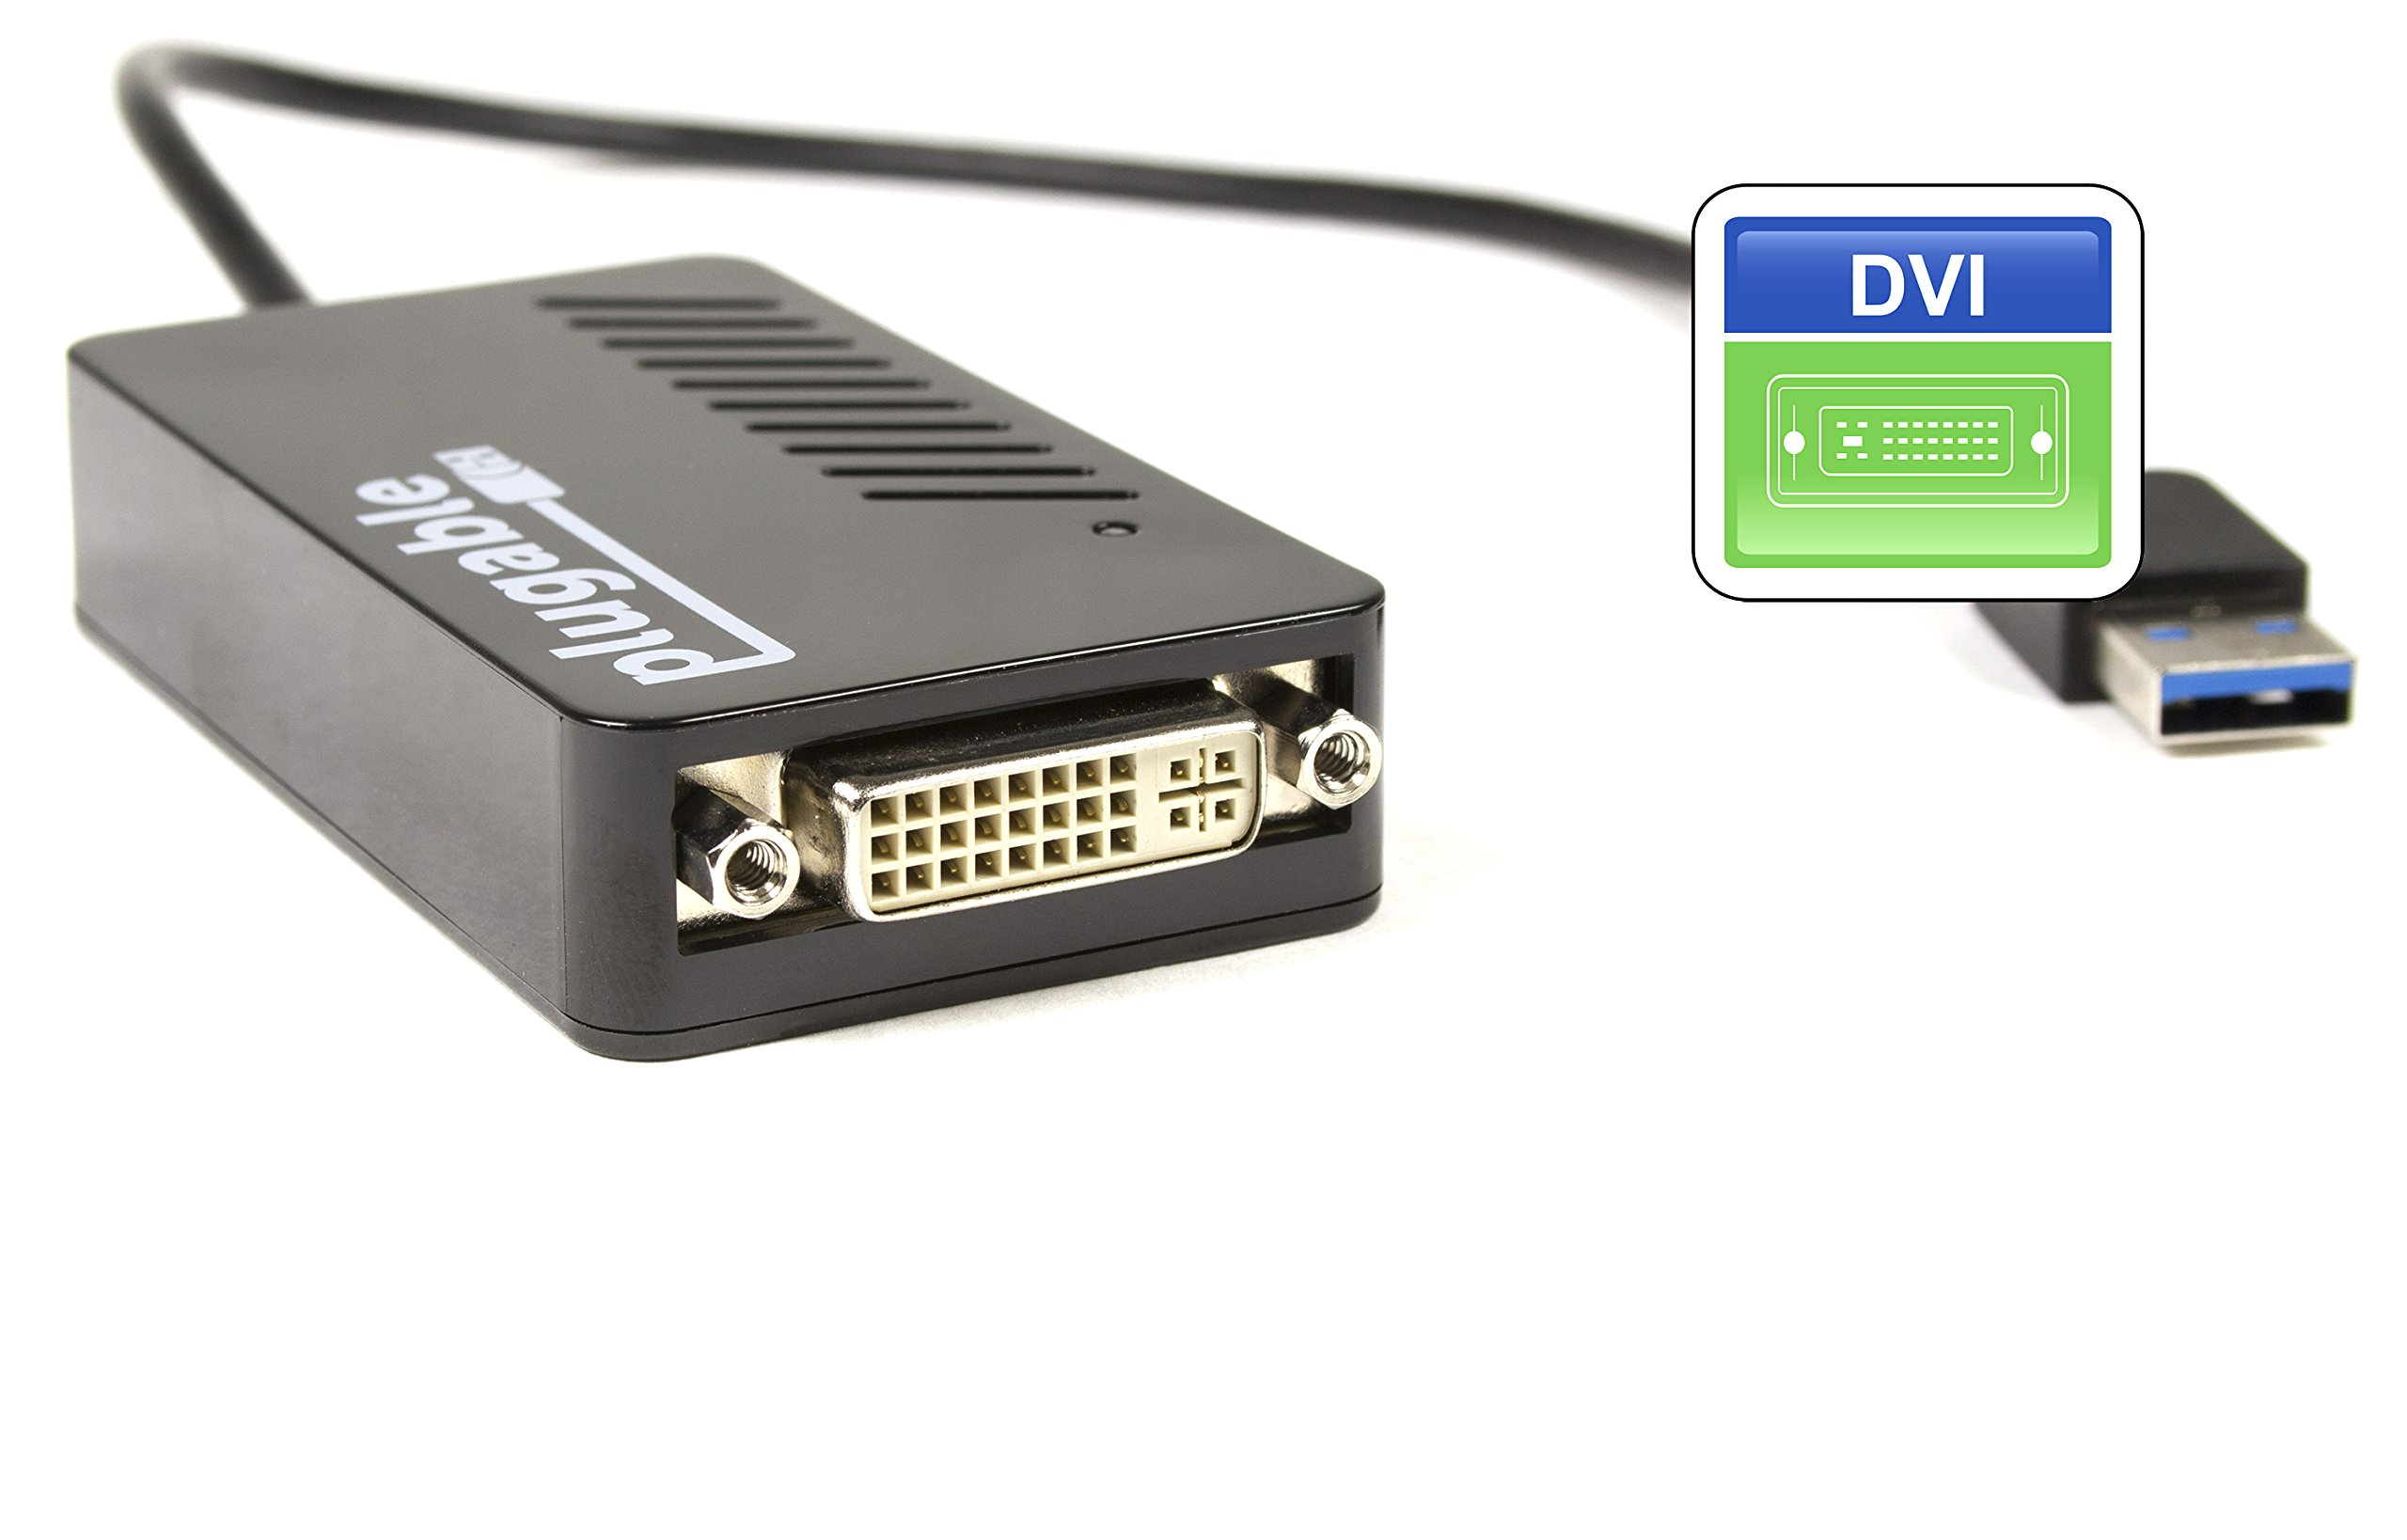 Plugable USB 3.0 to VGA/DVI / HDMI Video Graphics Adapter for Multiple Monitors up to 2048x1152 / 1920x1080 (Supports Windows 10, 8.1, 7, XP) by Plugable (Image #6)